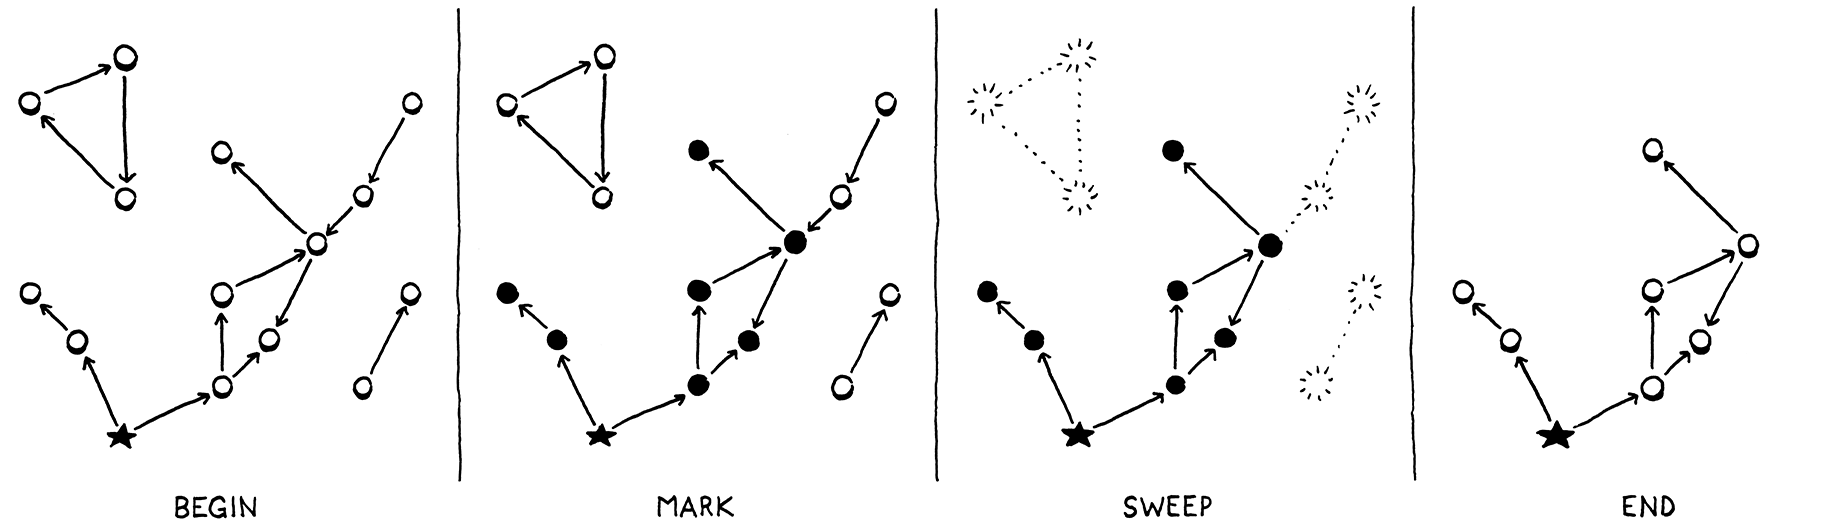 Starting from a graph of objects, first the reachable ones are marked, the remaining are swept and then only the reachable remain.